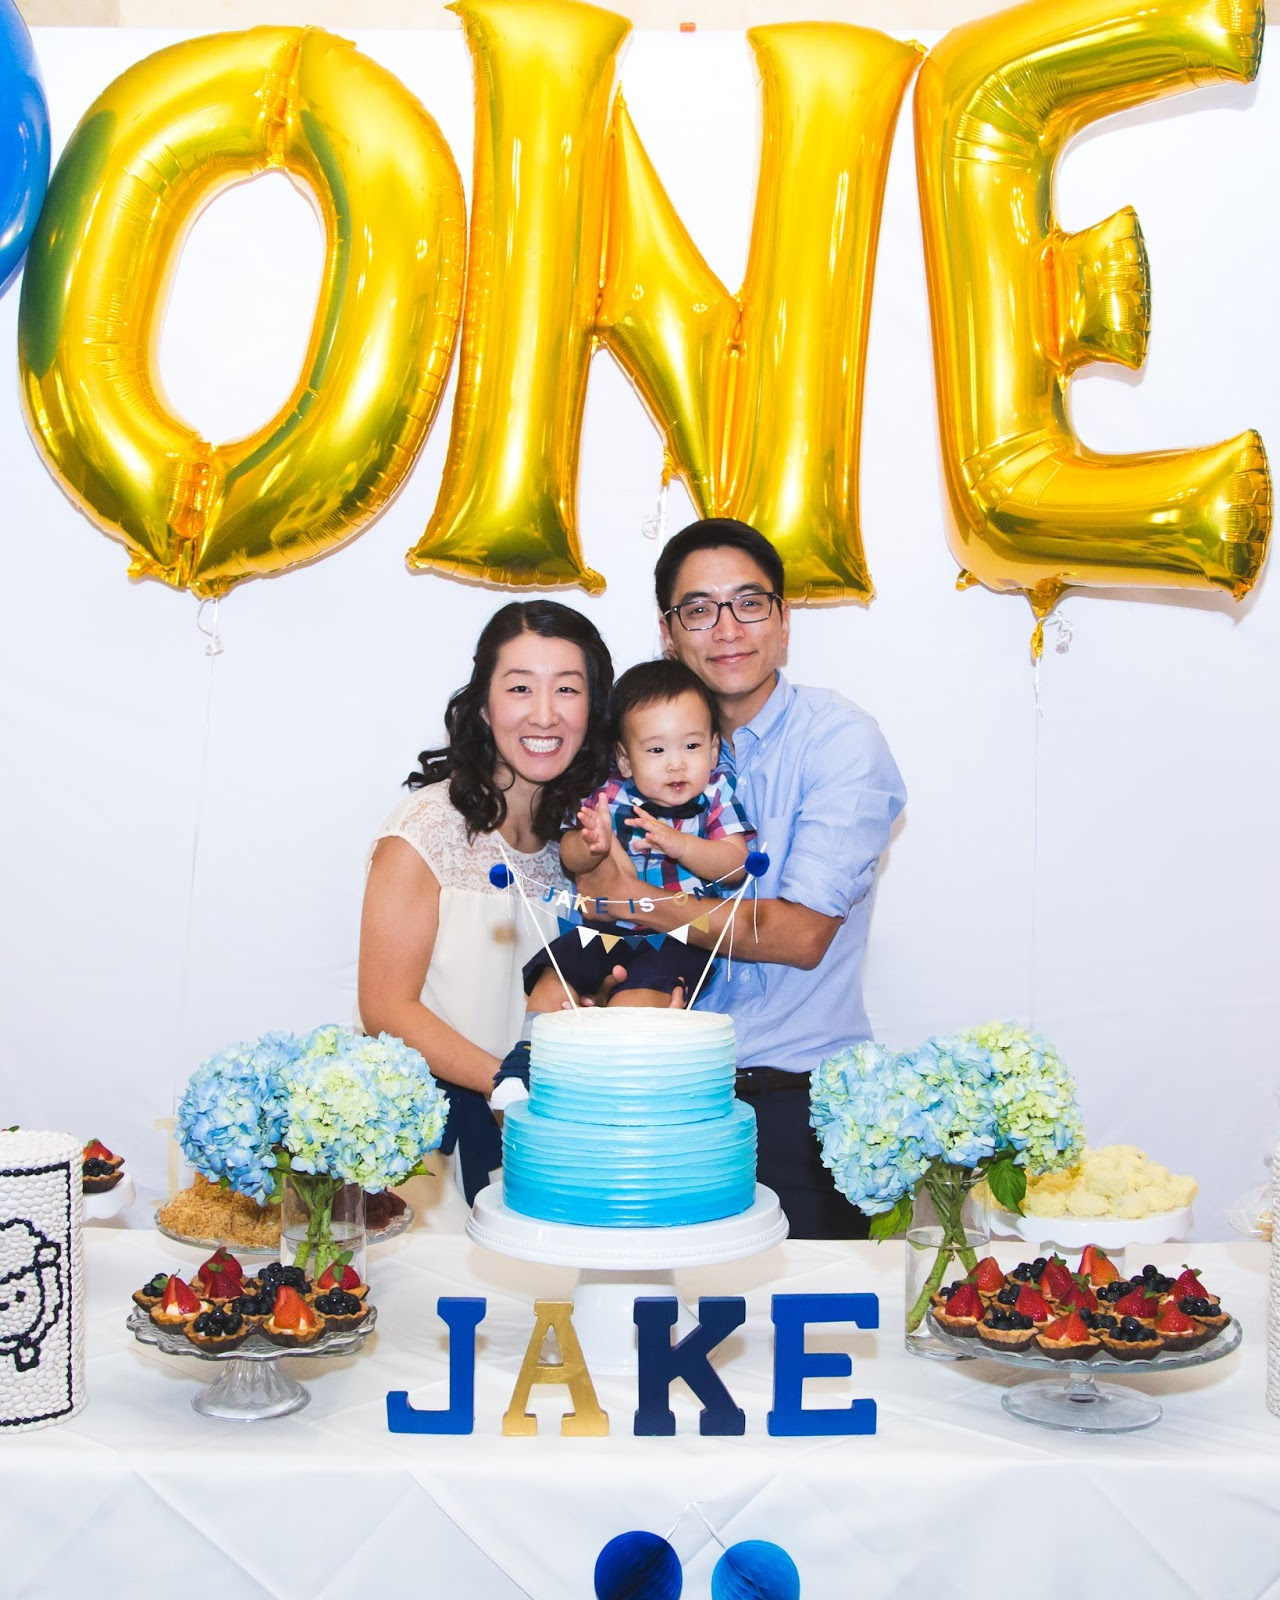 DELICIOWHSO Baby Jakes First Birthday